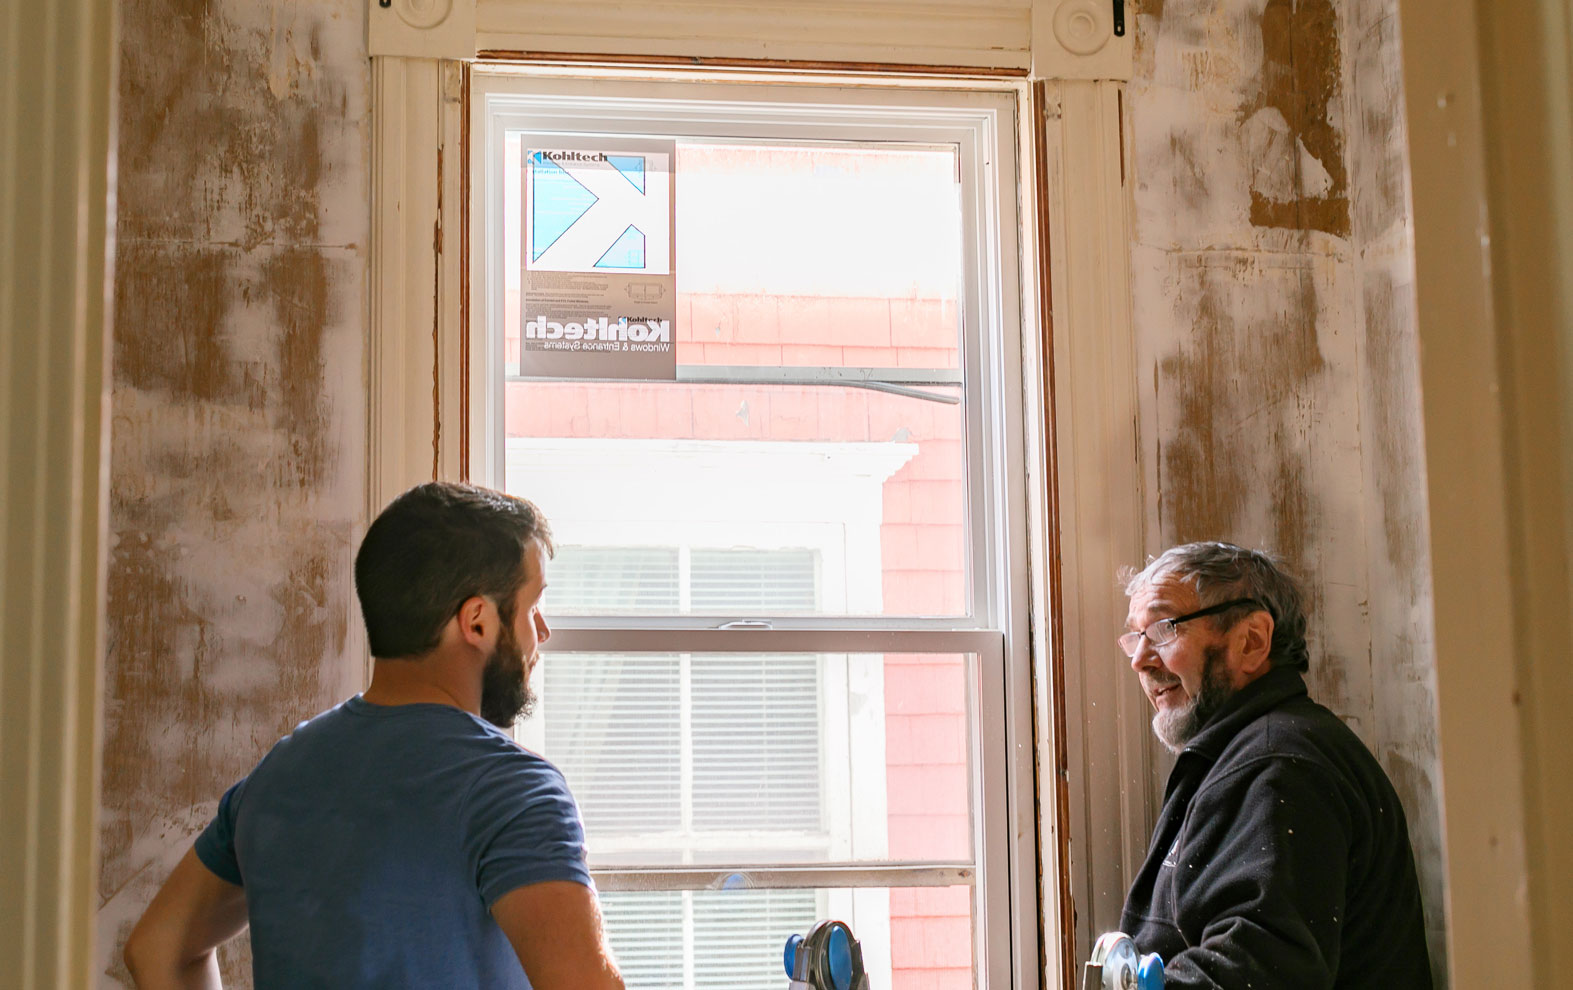 Construction works engaging in conversation while installing energy efficient windows